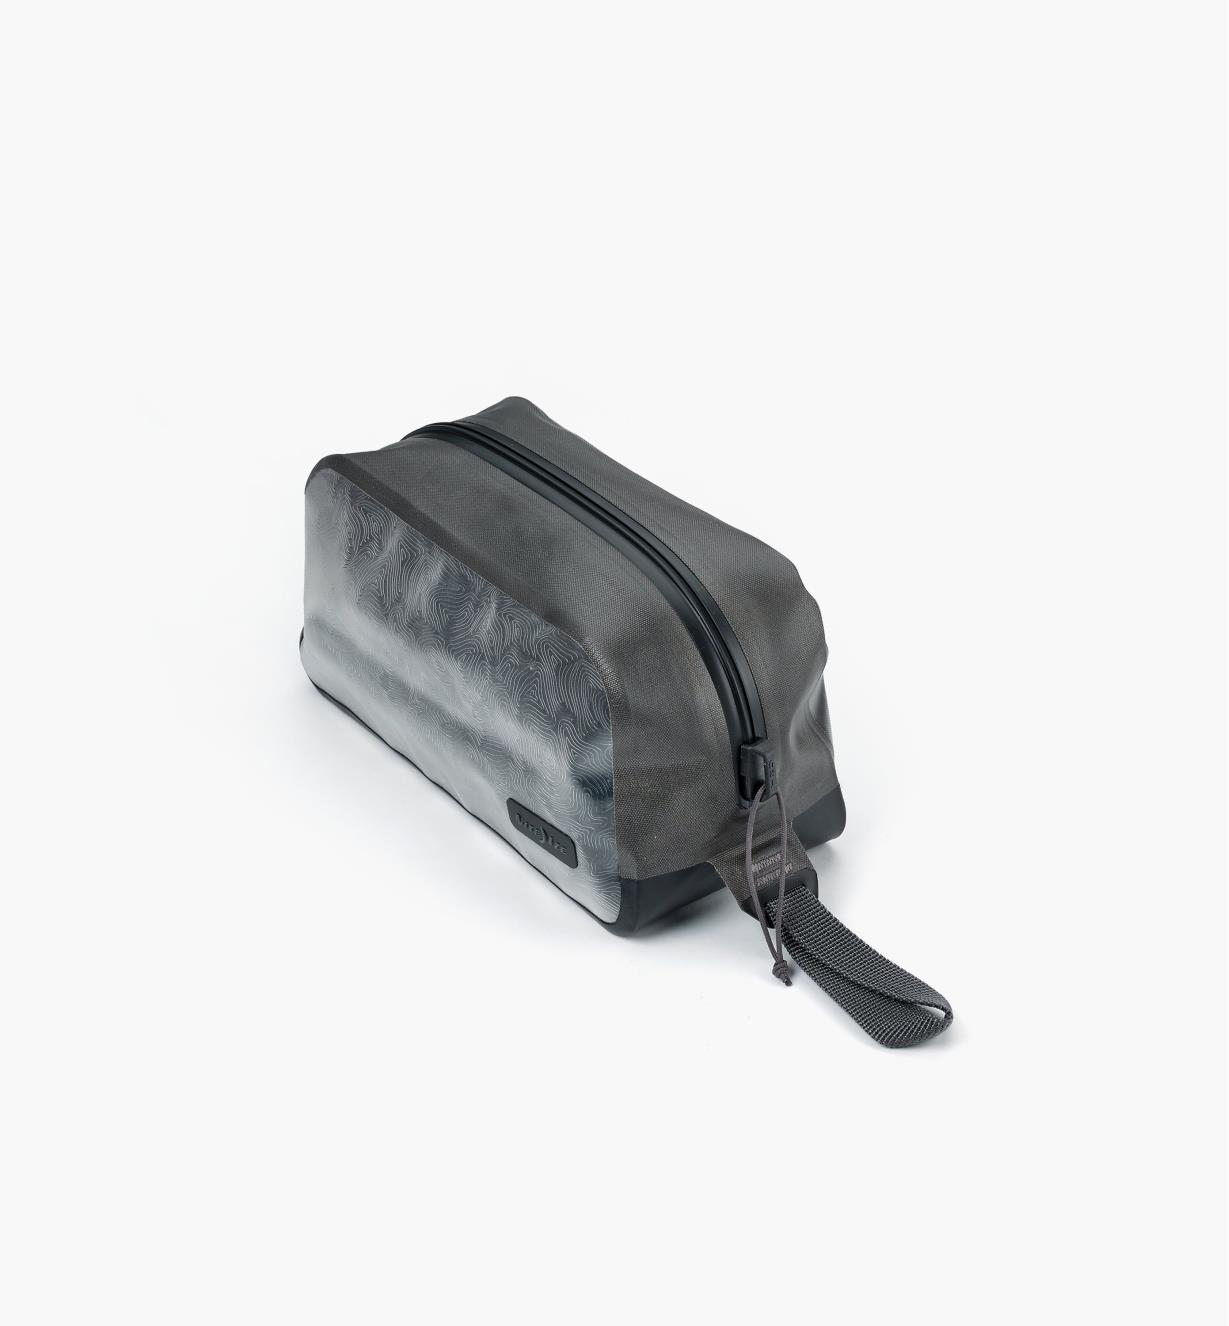 68K1054 - Trousse de toilette RunOff Nite Ize